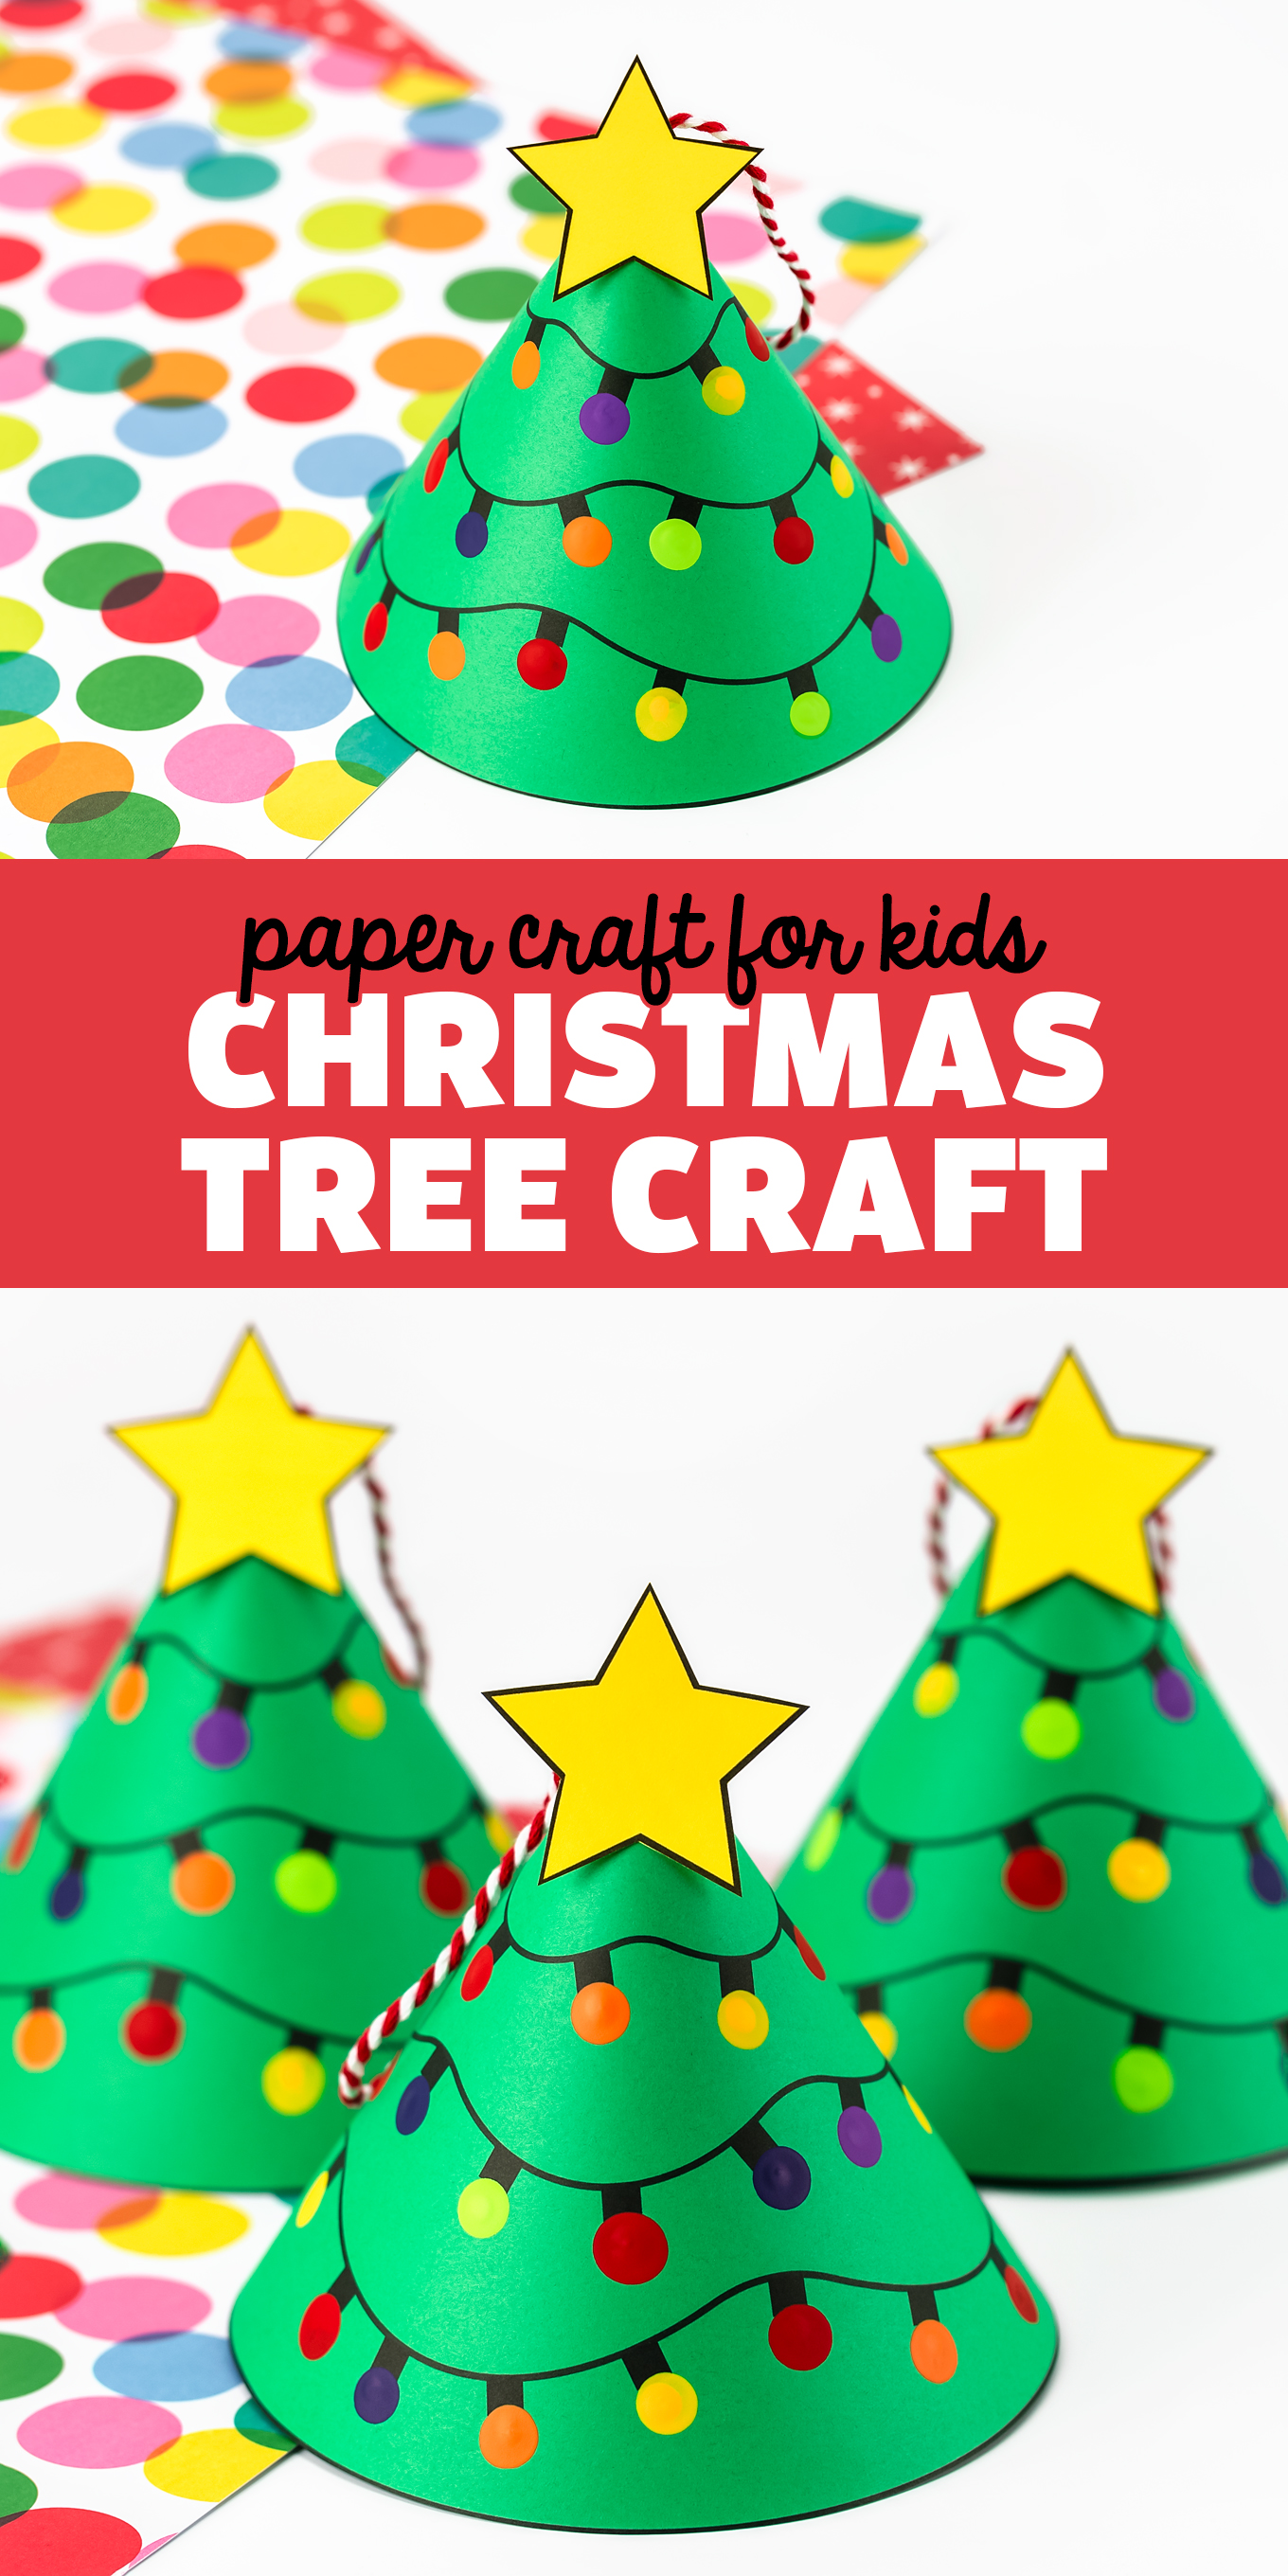 Christmas Tree Craft for Kids - Use our free printable template and video tutorial to learn how to make this easy and fun Christmas Tree Craft ornament for kids! Follow us on Pinterest for more easy kids Christmas crafts! via @firefliesandmudpies